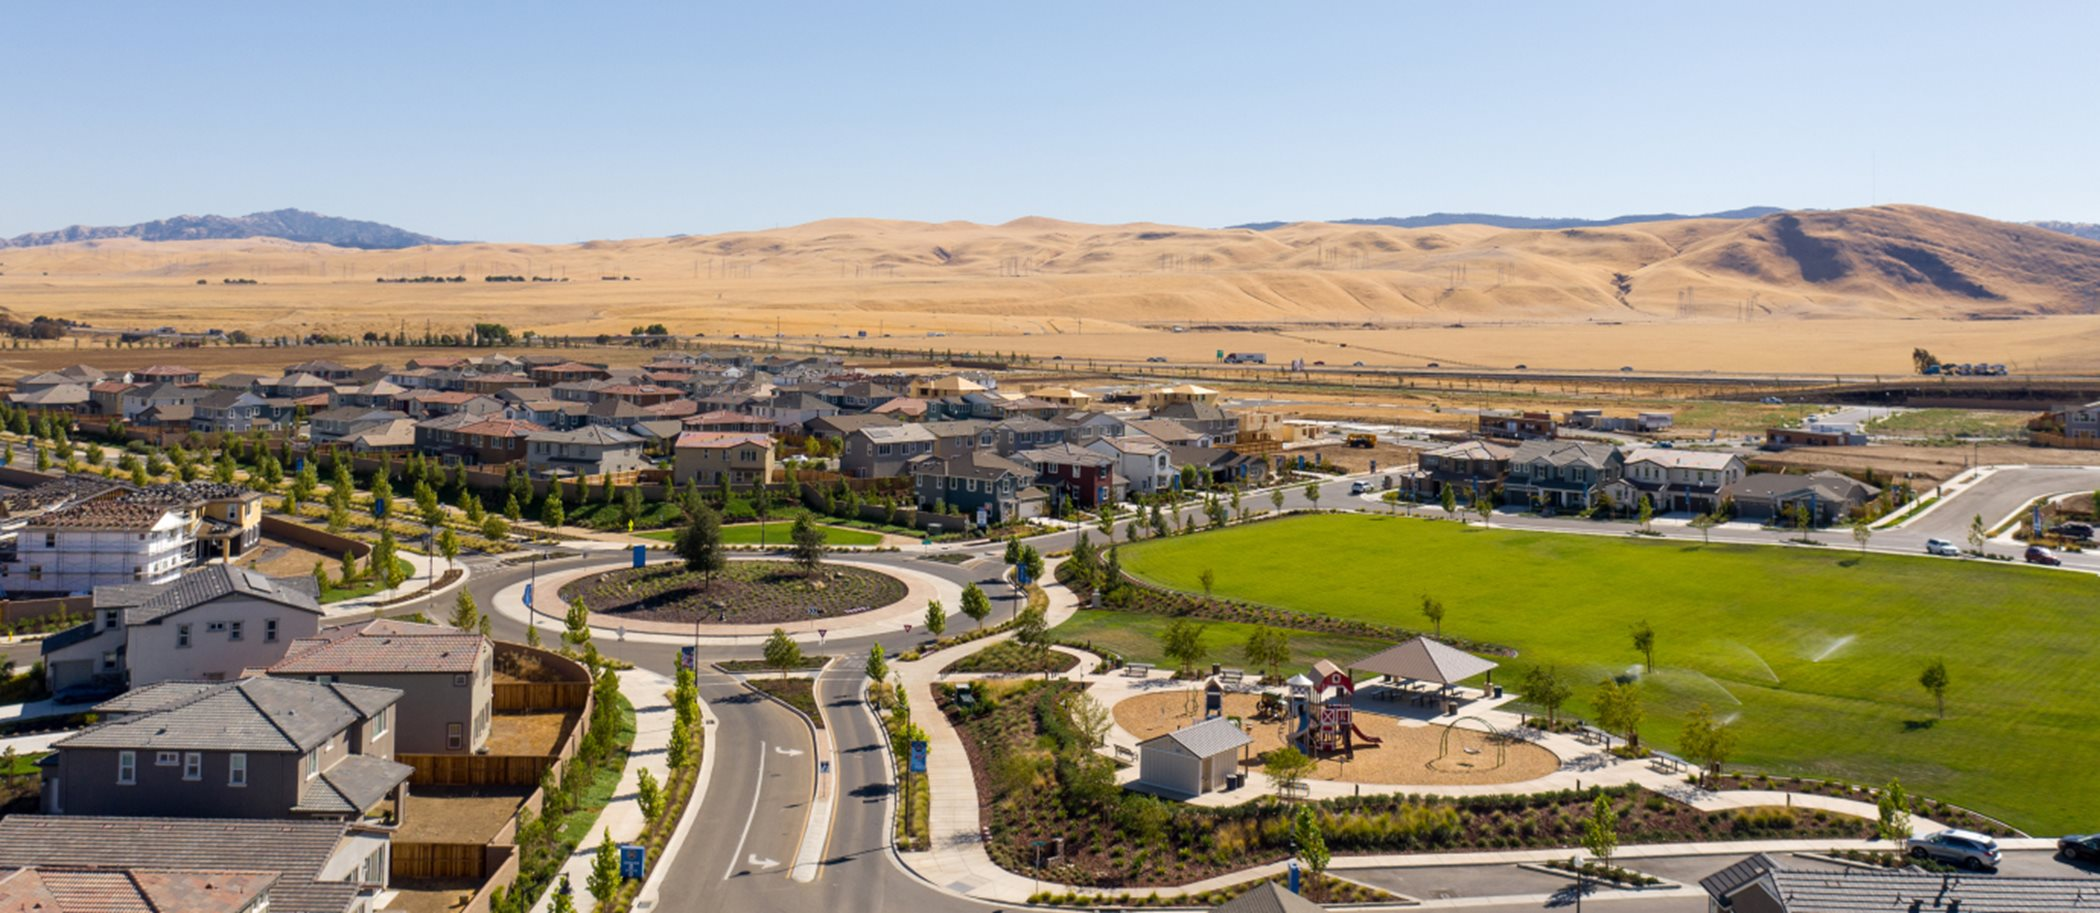 Tracy Hills Aerial